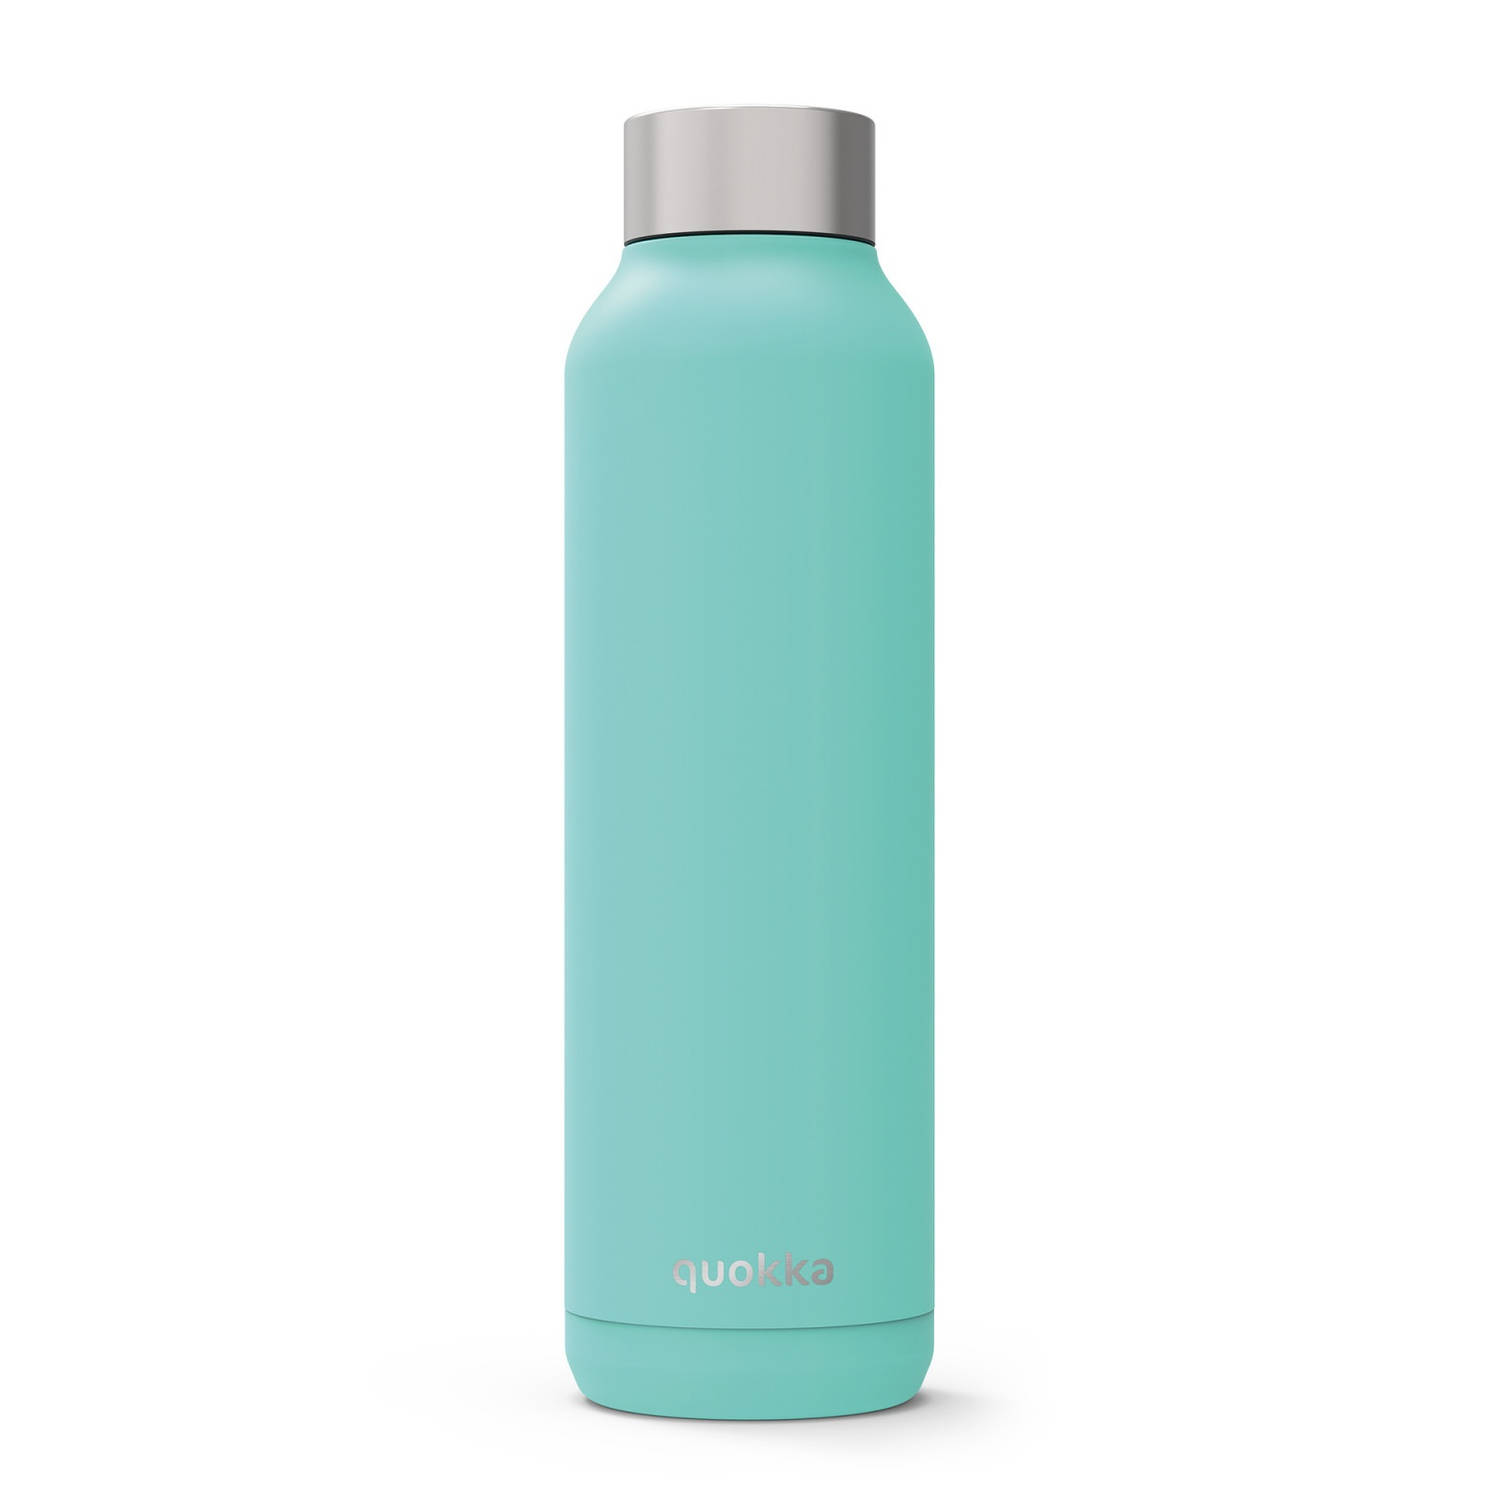 Quokka drinkfles RVS Solid Aquamarine 630 ml aqua